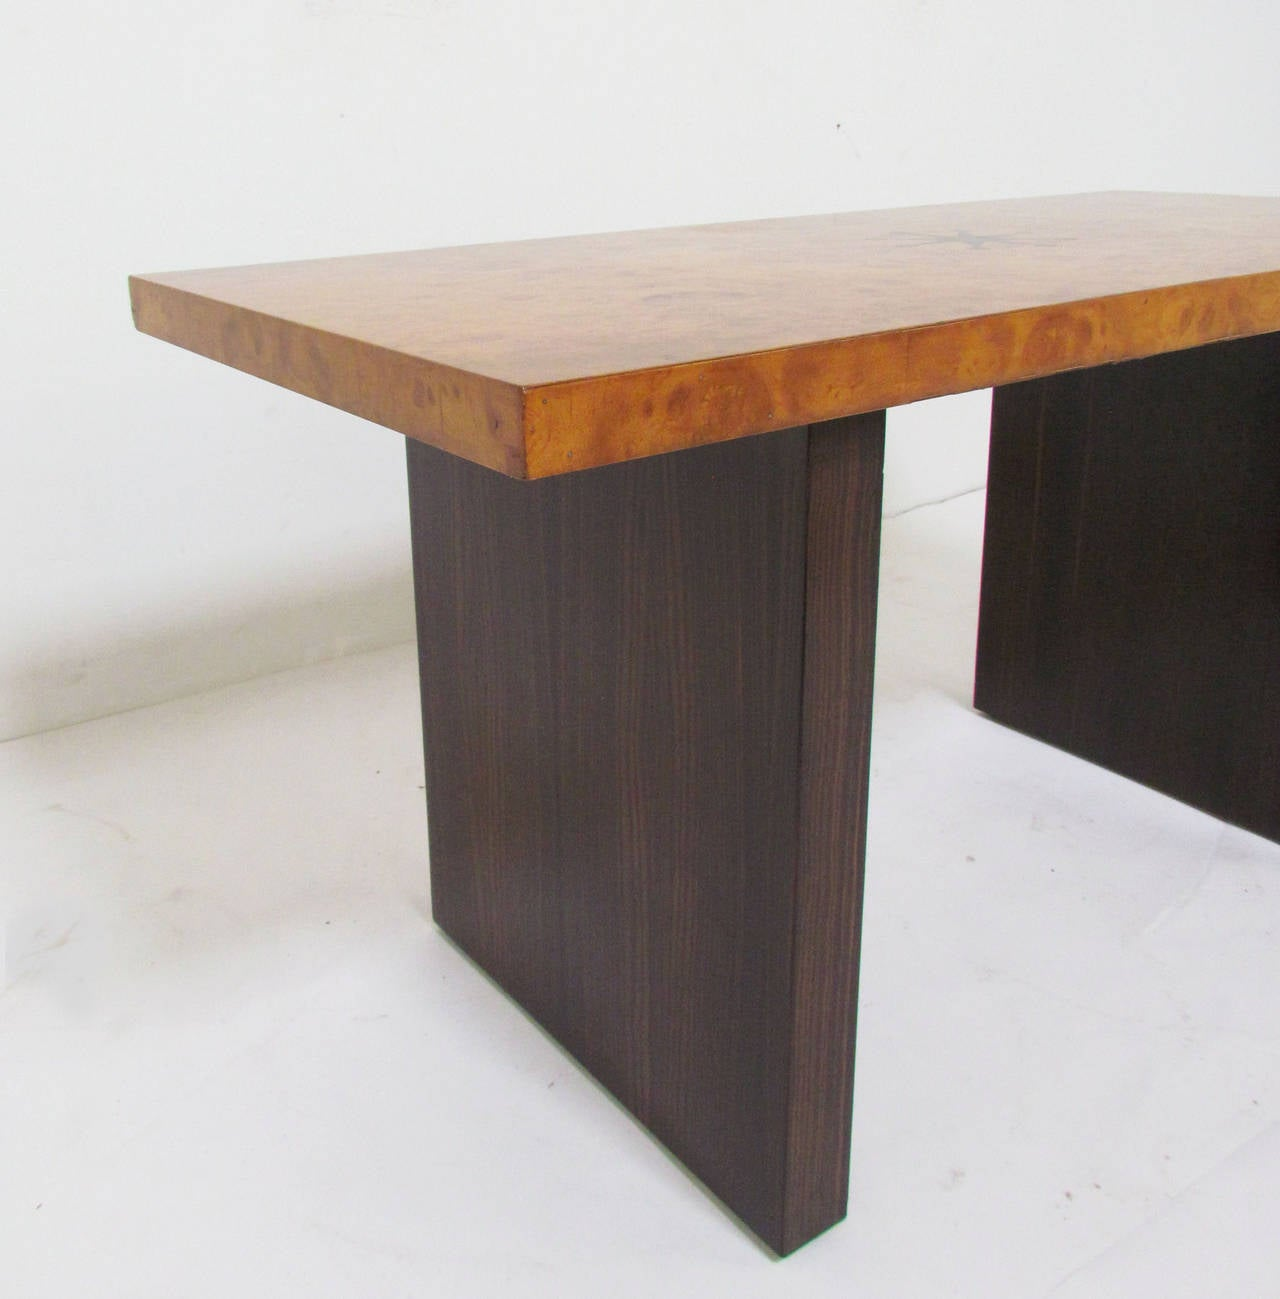 Mid-20th Century Inlaid Burl Wood and Macassar Bench or Occasional Table by Andrew Szoeke For Sale